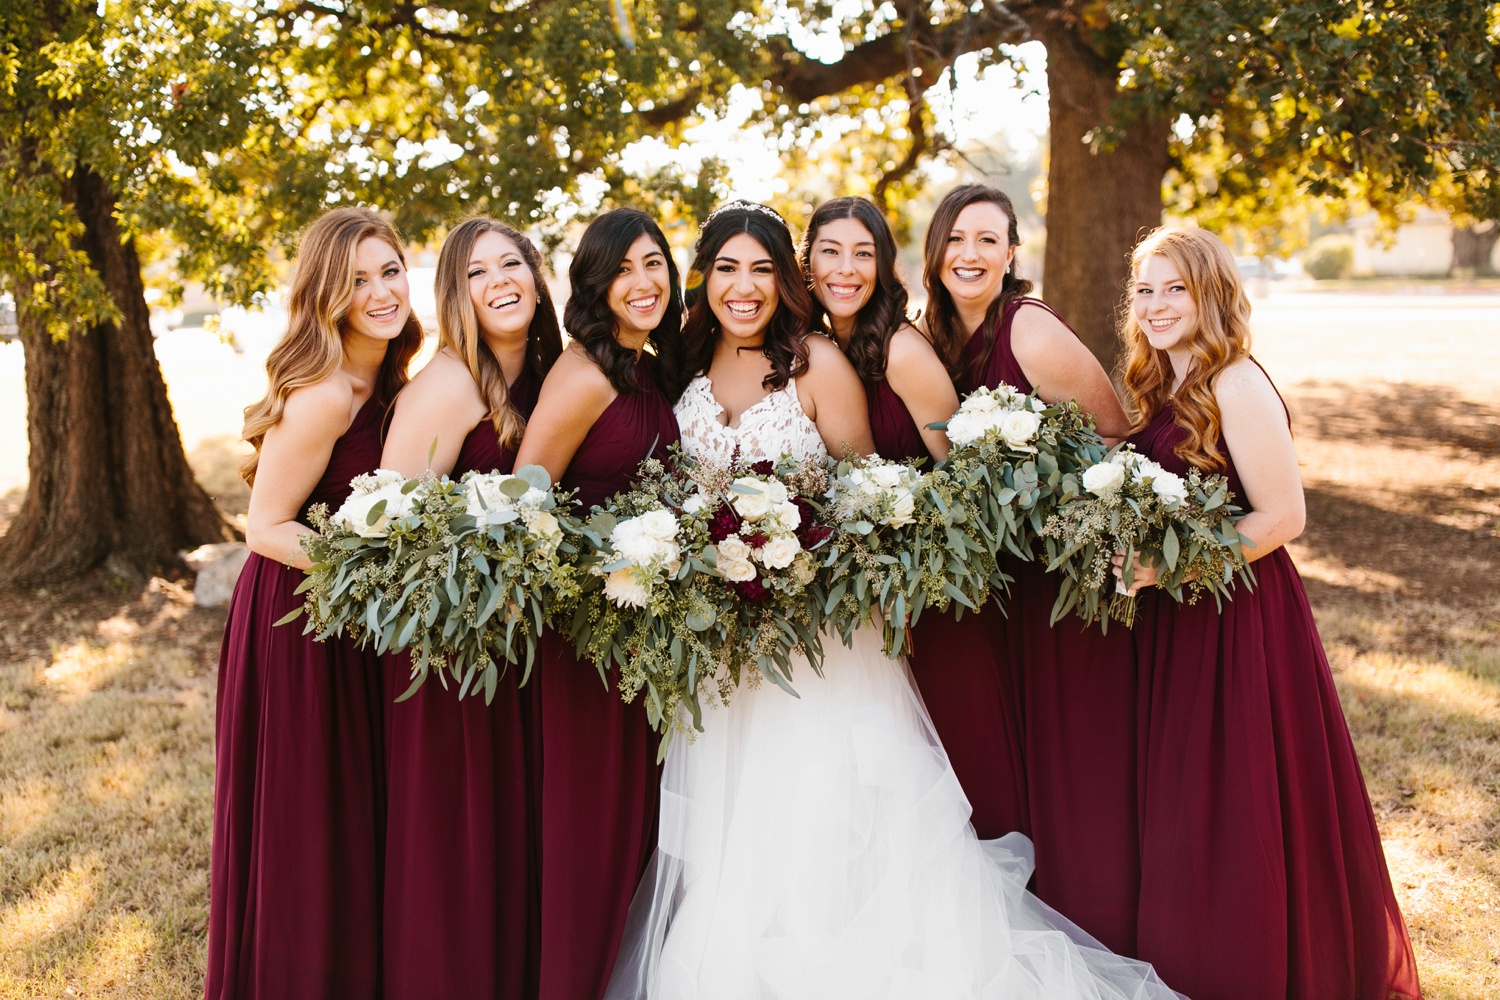 Grant + Lysette | a vibrant, deep burgundy and navy, and mixed metals wedding at Hidden Pines Chapel by North Texas Wedding Photographer Rachel Meagan Photography 036